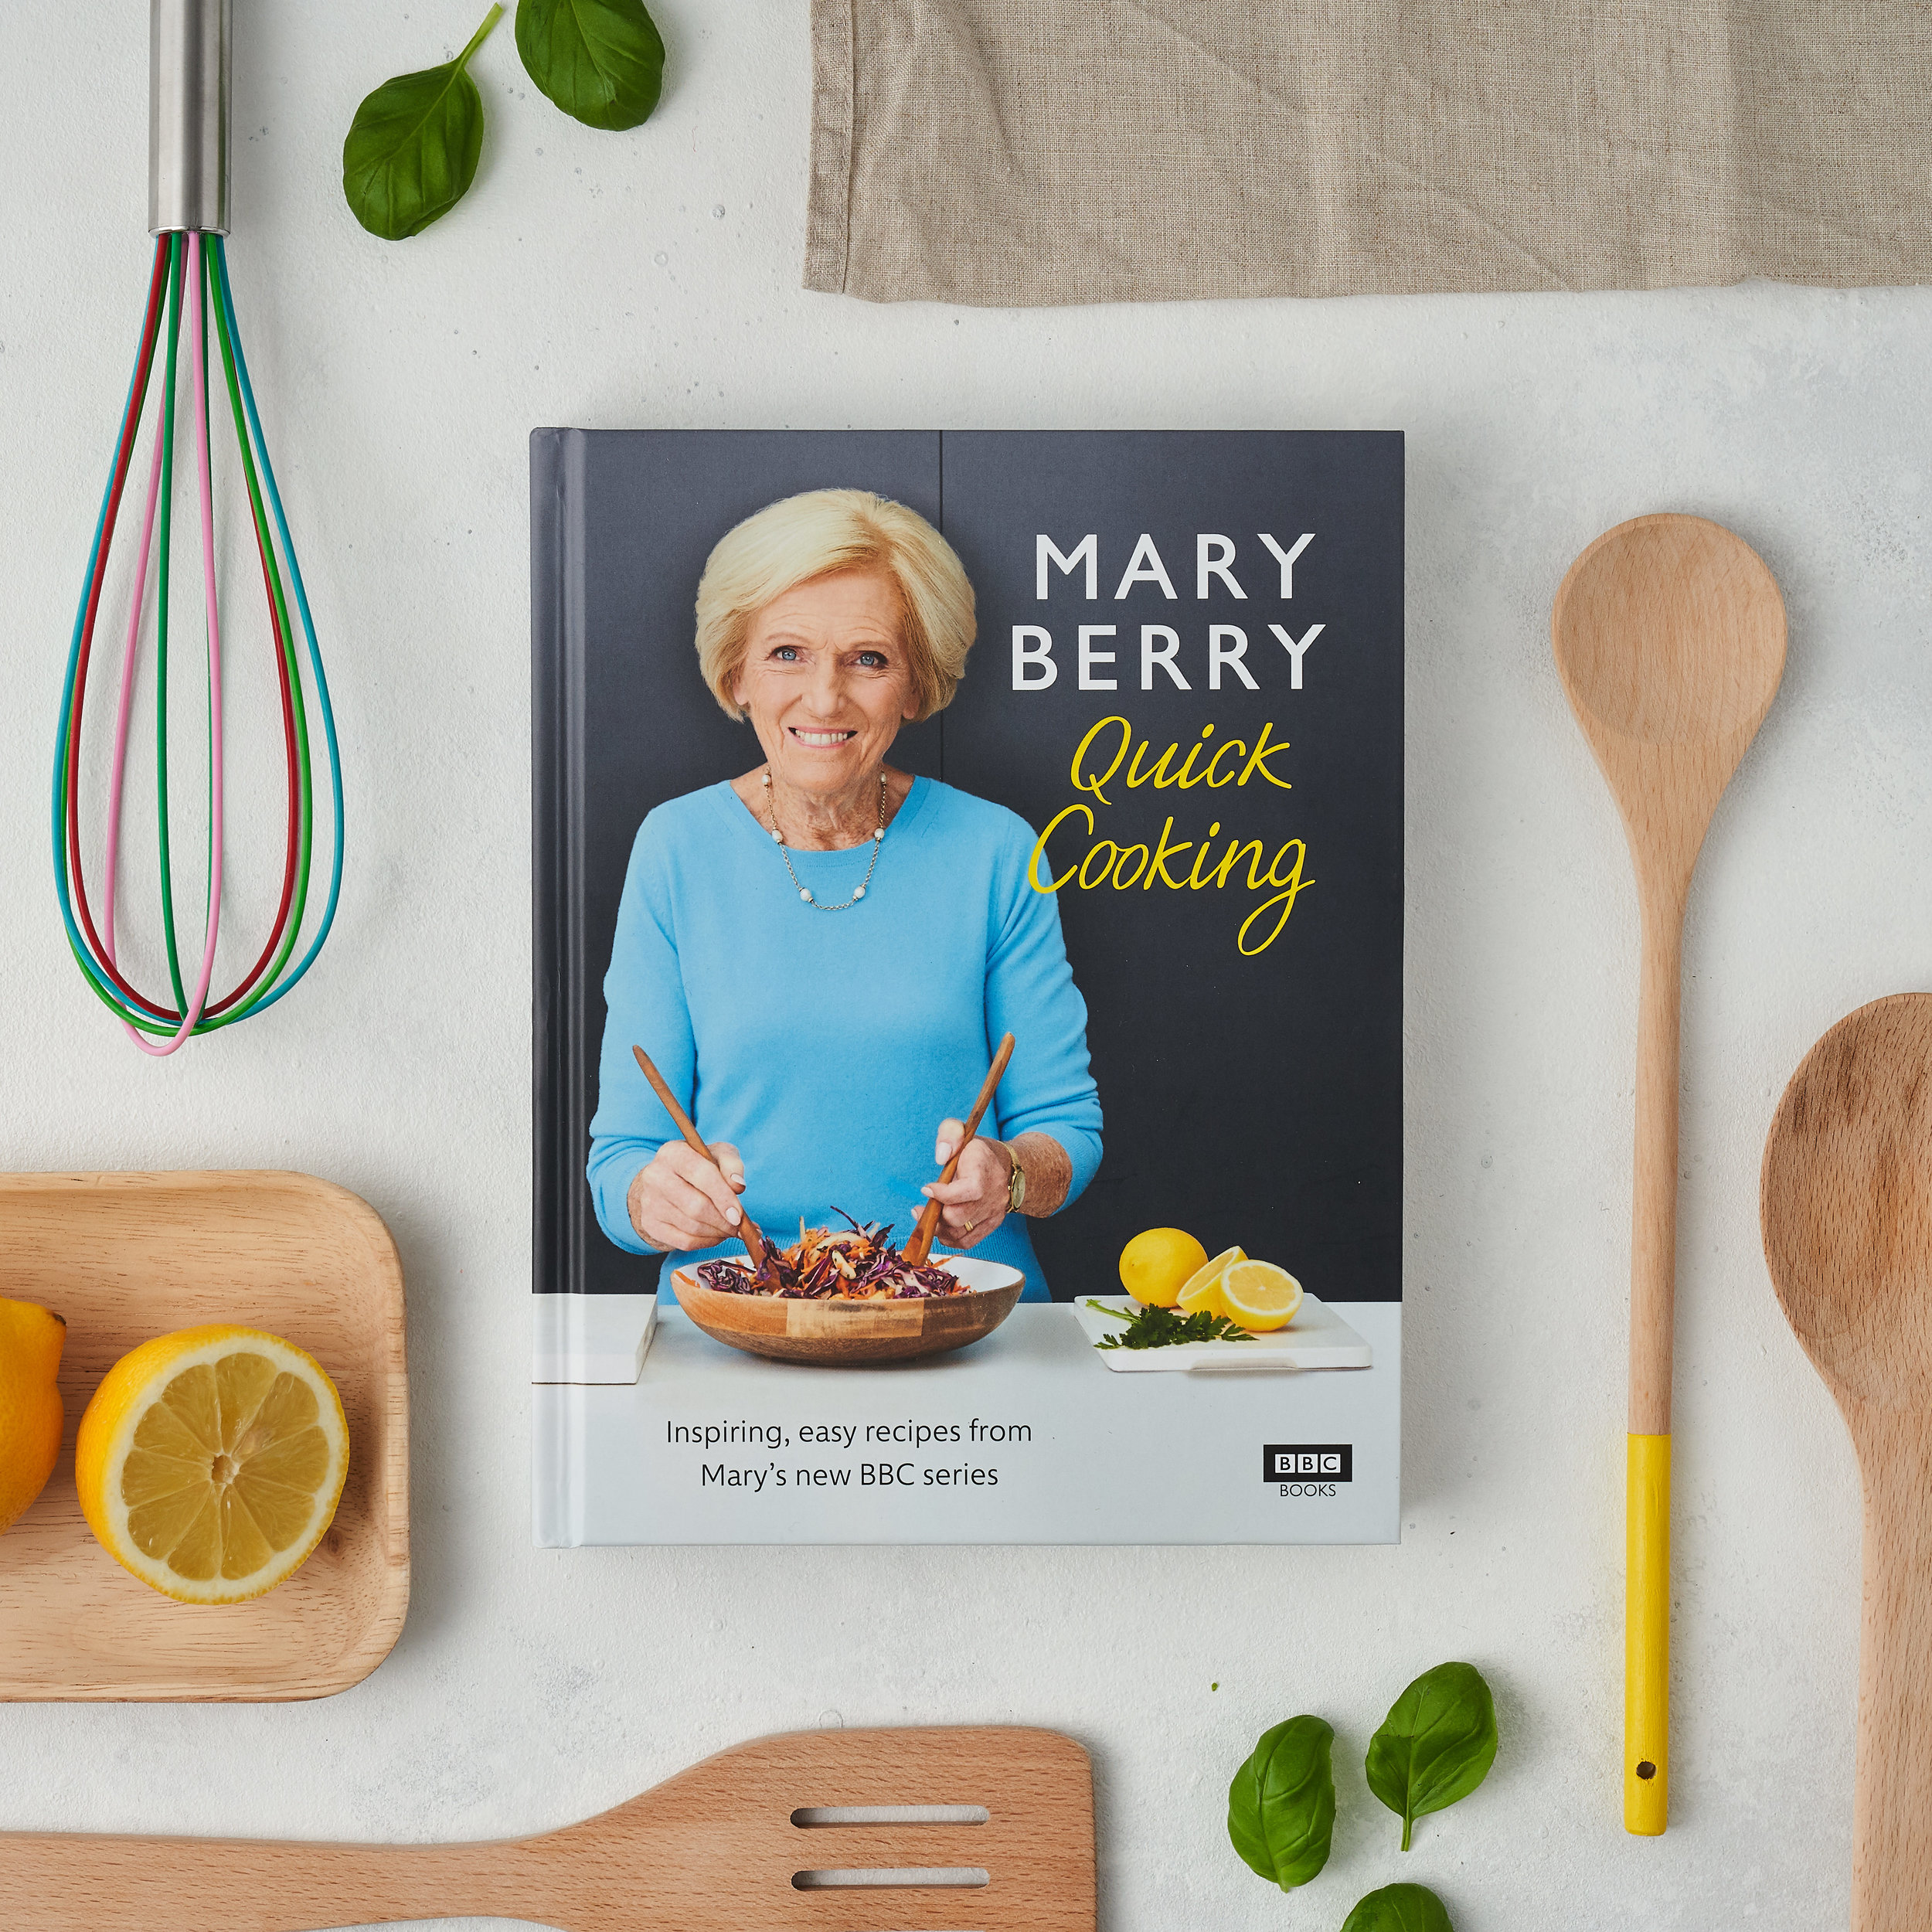 Mary Berry's Quick Cooking Marketing Campaign